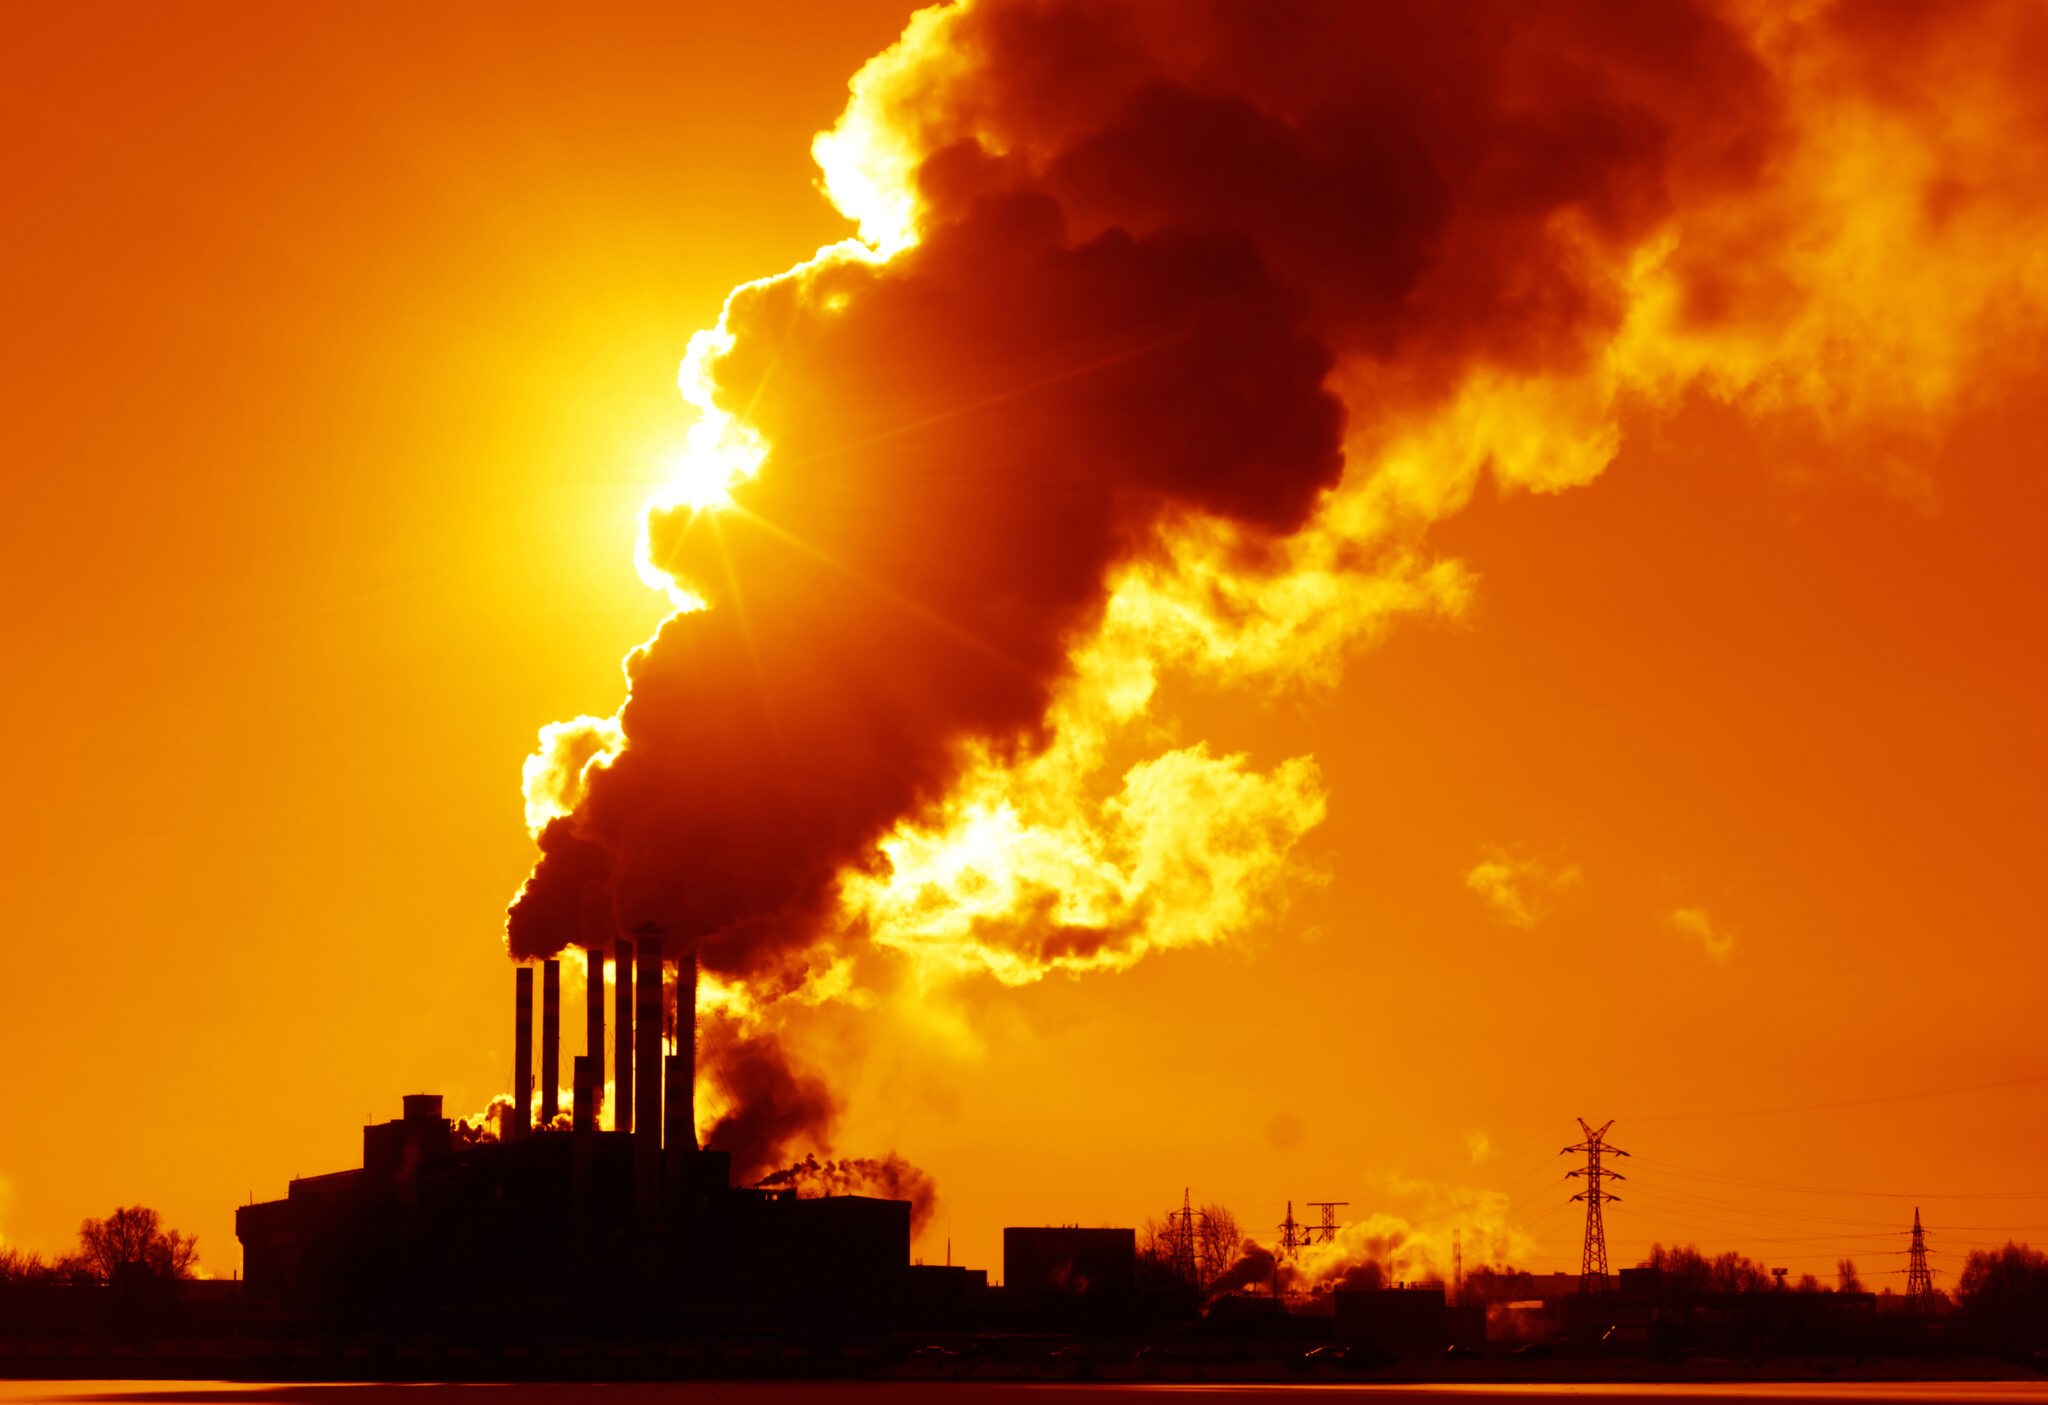 Pioneering study highlights need for consistent air quality monitoring